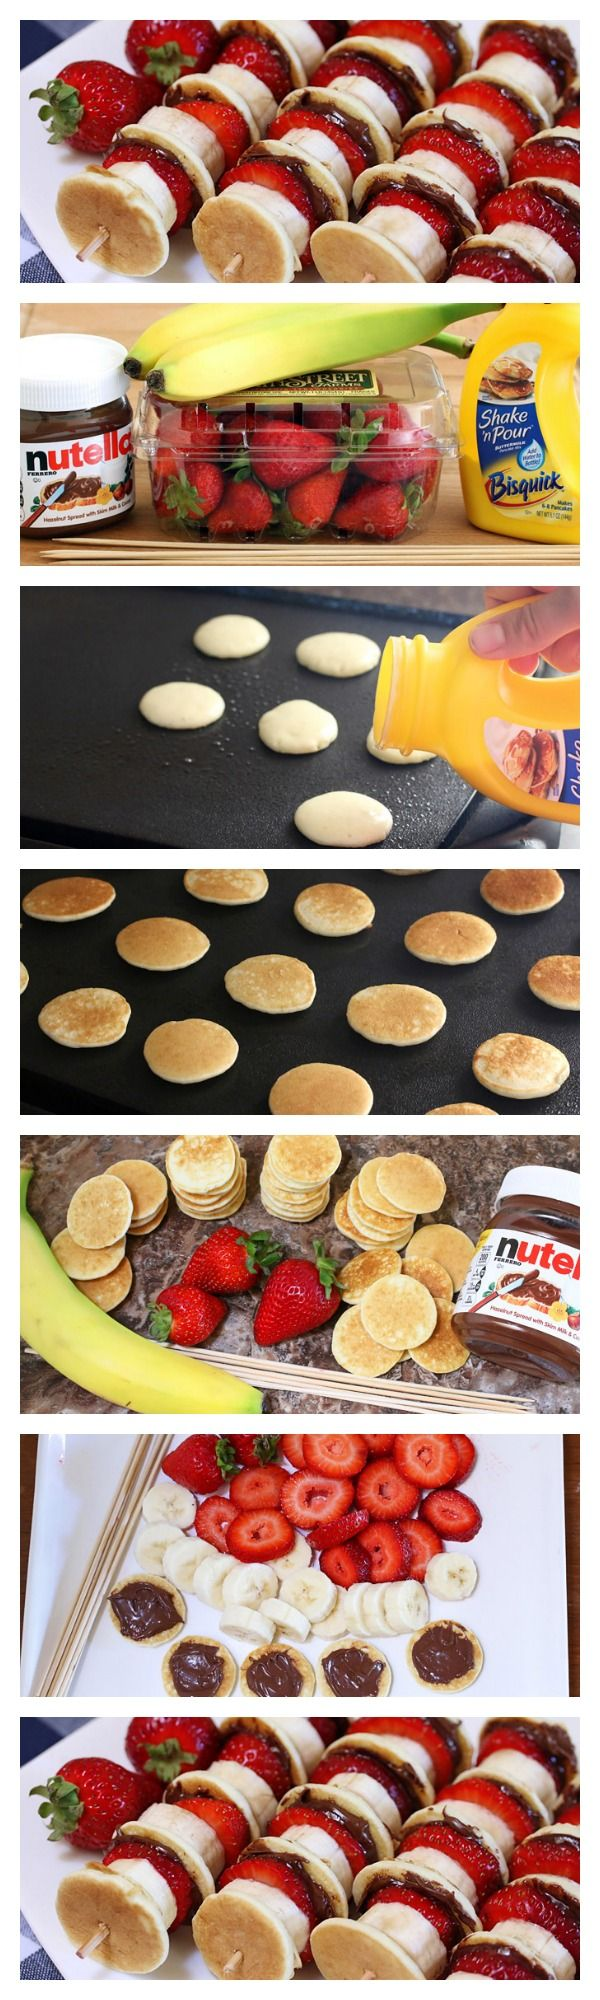 Nutella Mini Pancake Kabobs OMG!!! These look AMAZING!! @cheval503